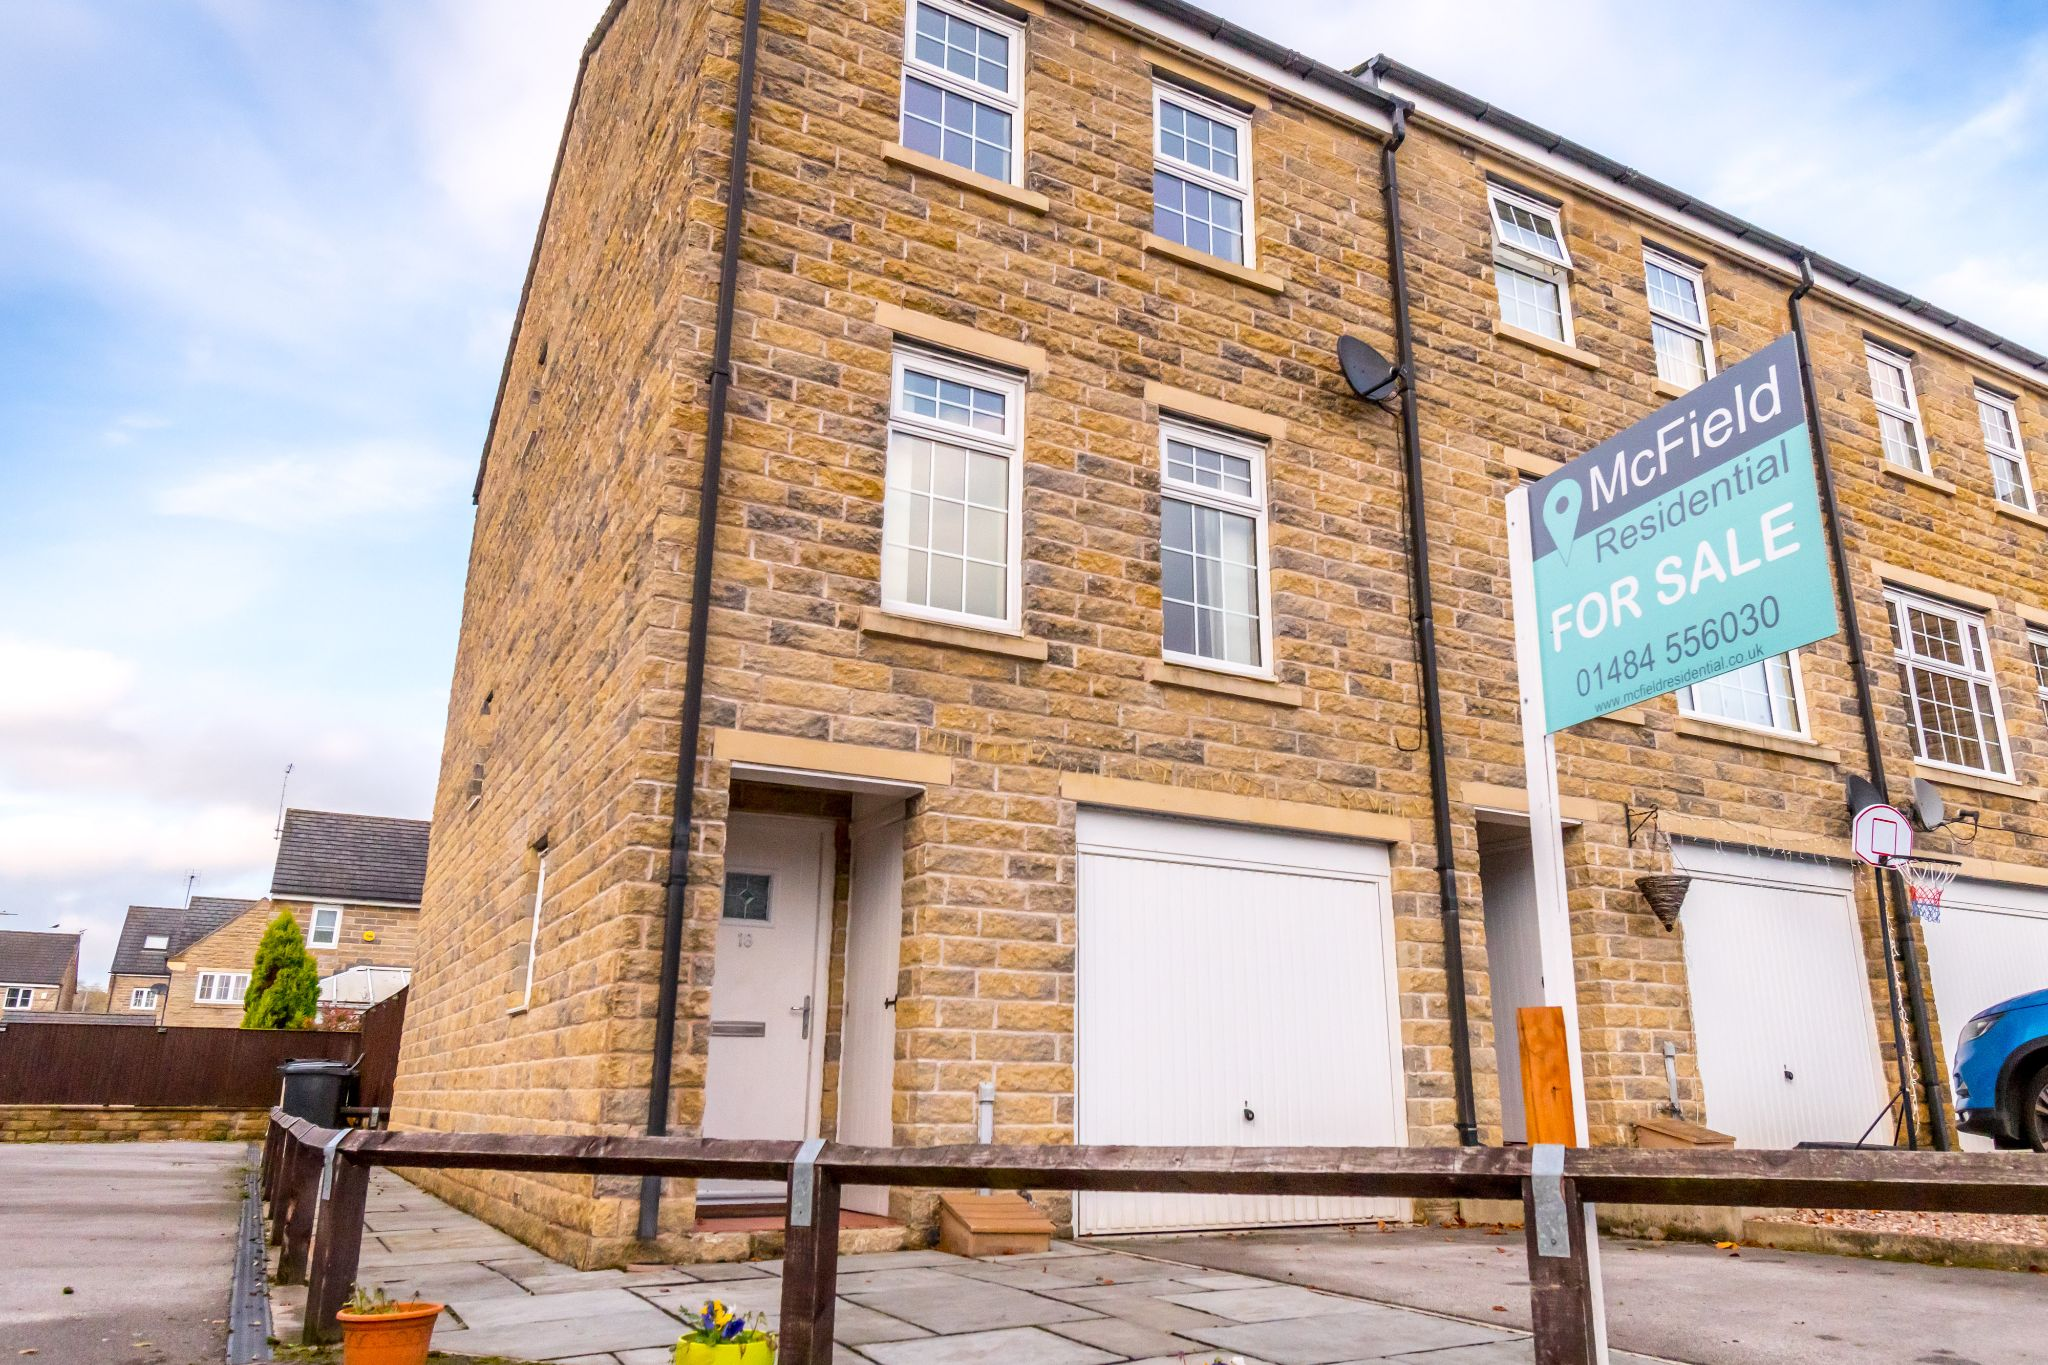 4 bedroom end terraced house SSTC in Brighouse - Front aspect